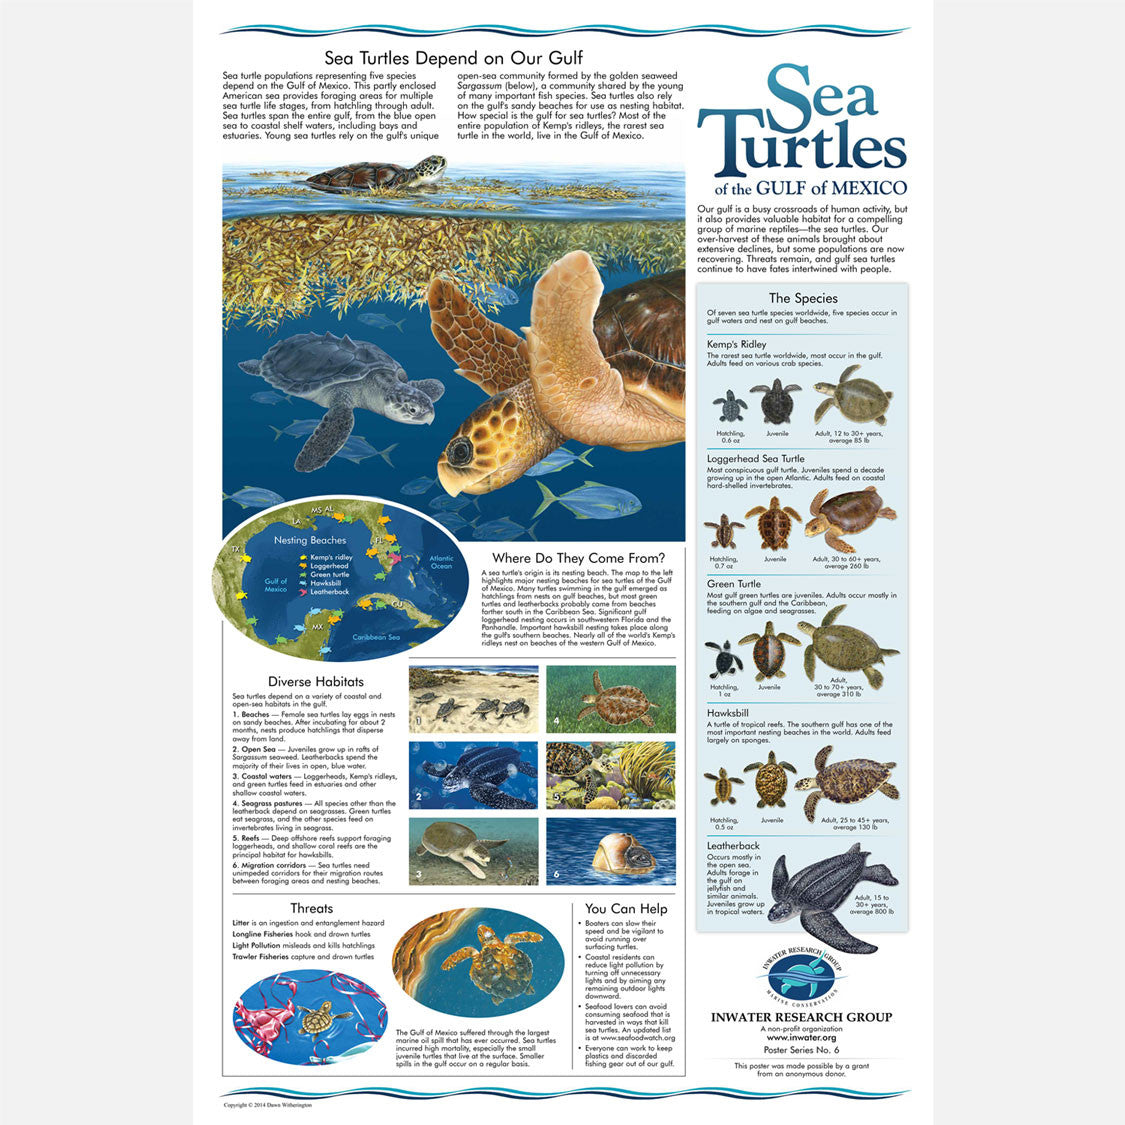 This beautiful poster provides information and identification of the five sea turtle species found in the Gulf of Mexico.